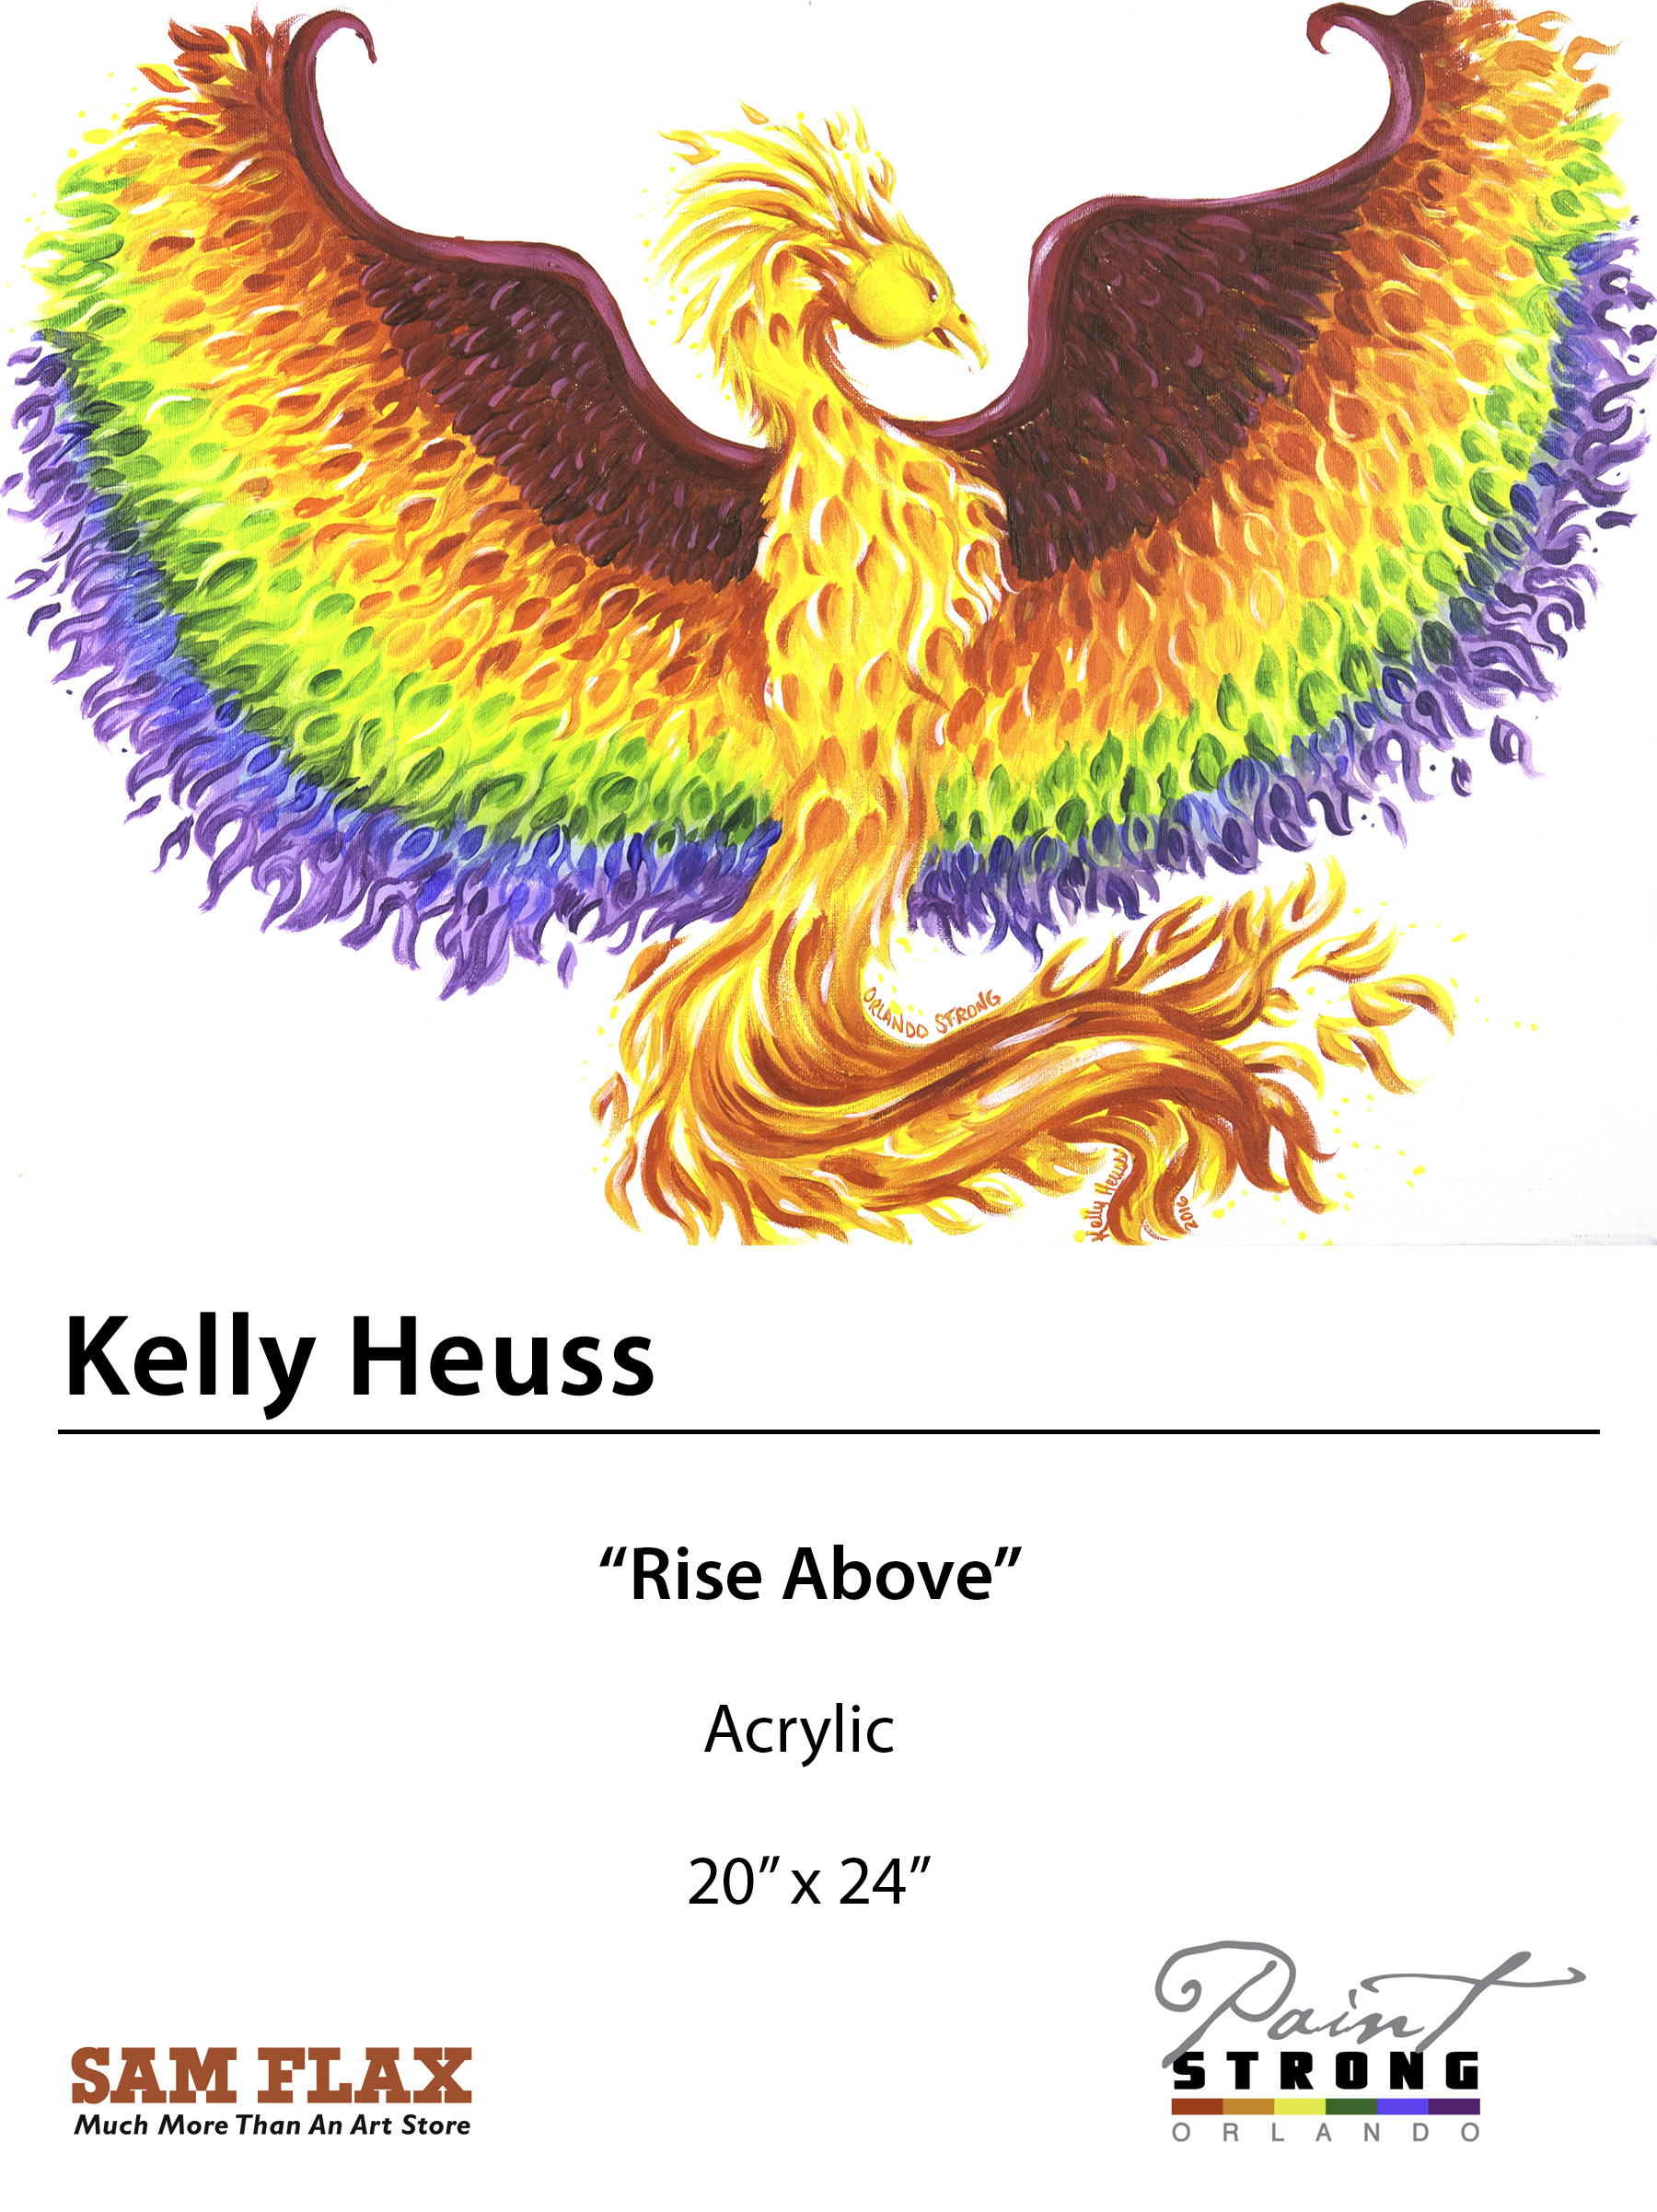 Kelly Heuss